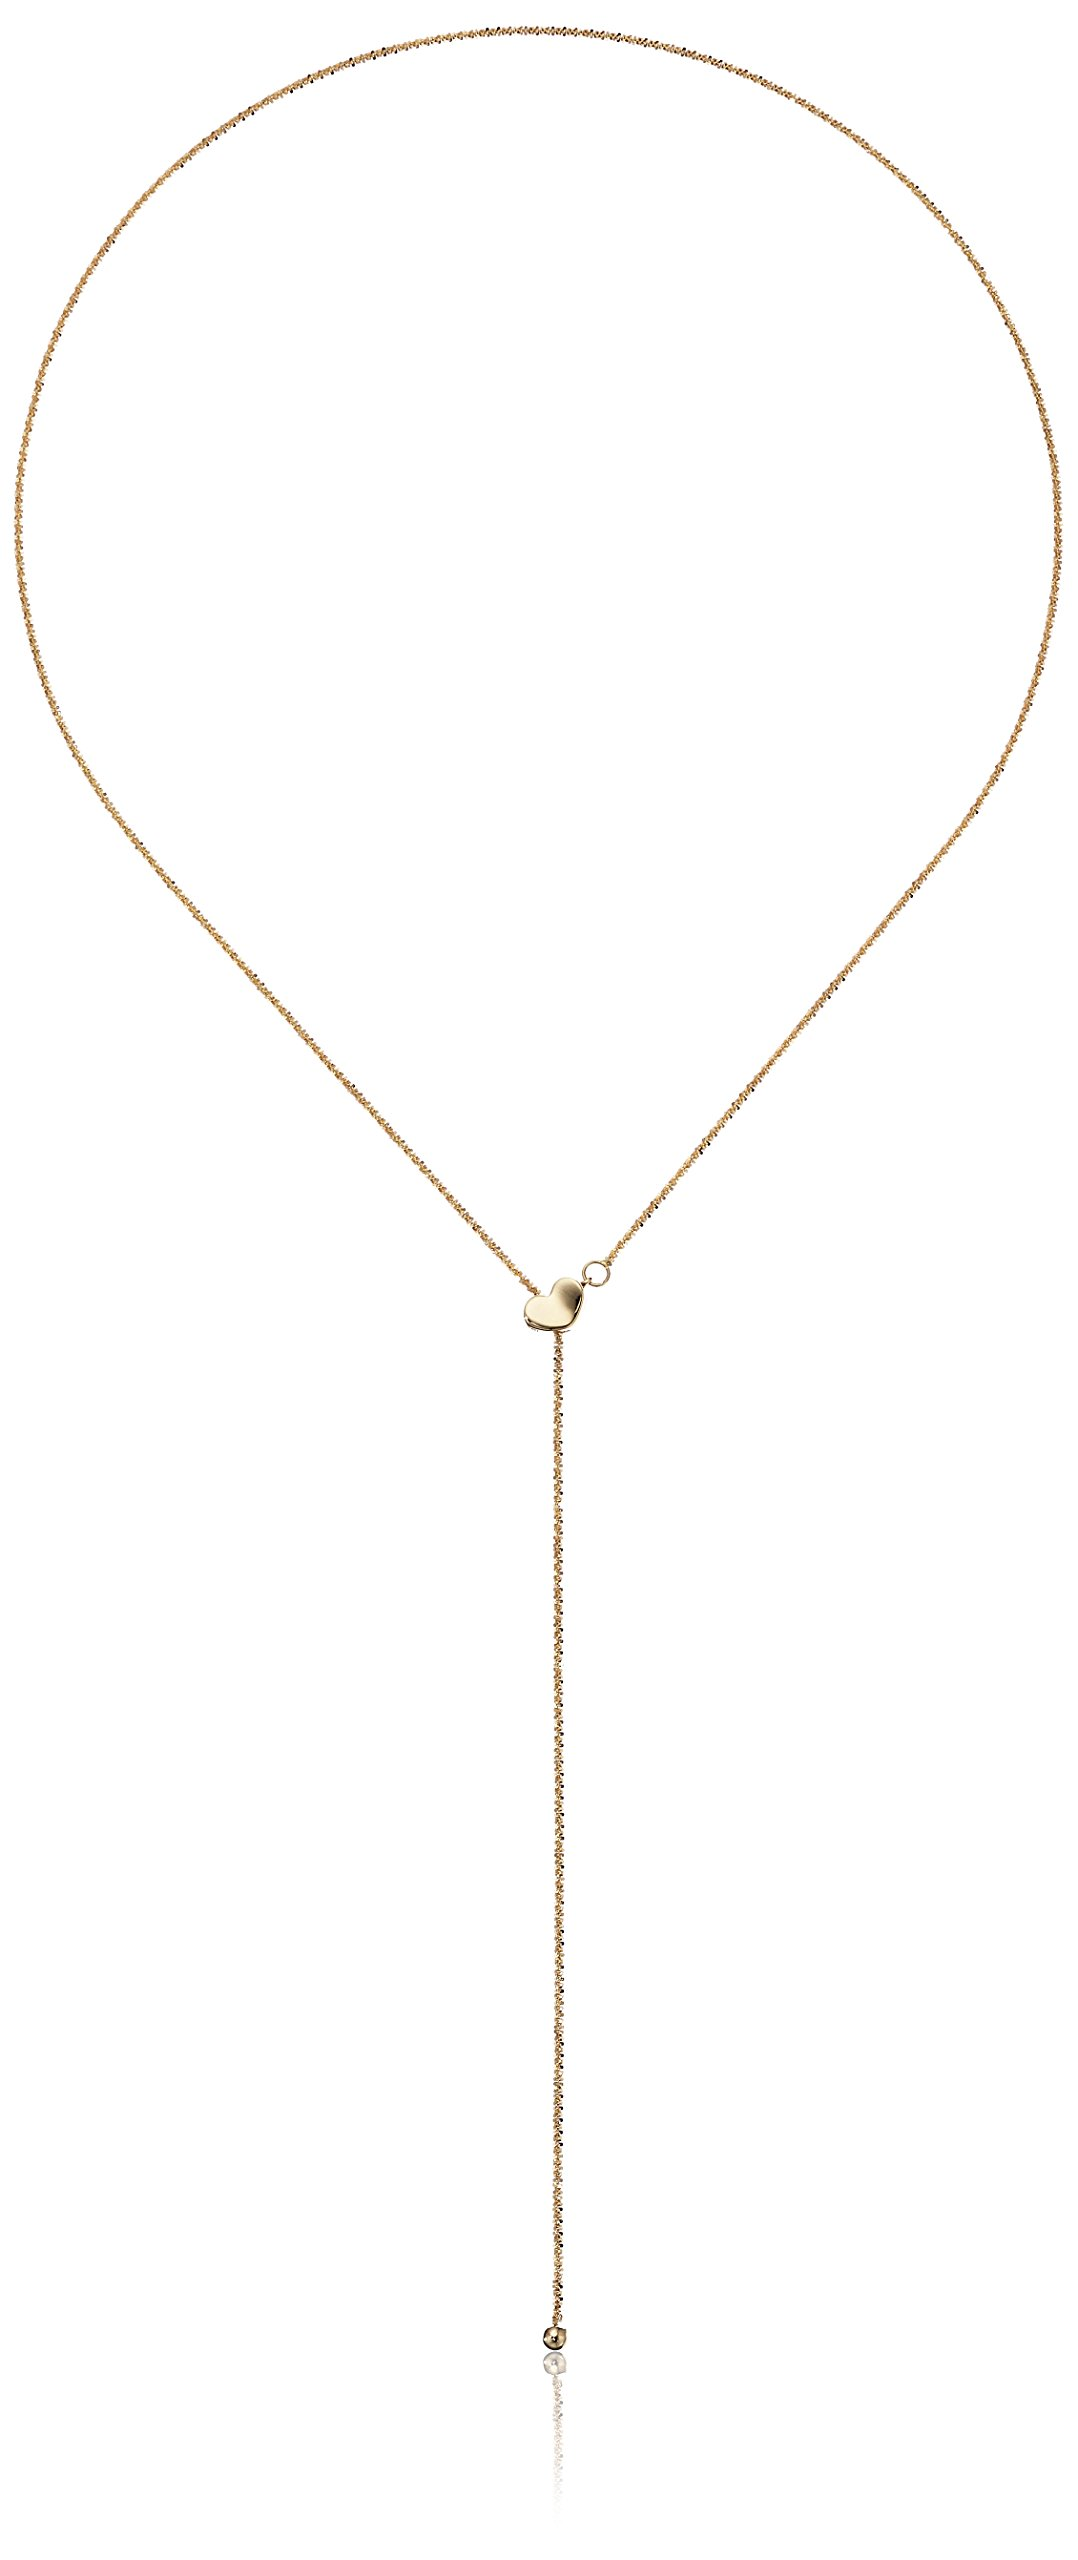 14k Yellow Gold Adjustable Heart Lariat Sparkle Chain Y-Shaped Necklace, 22''